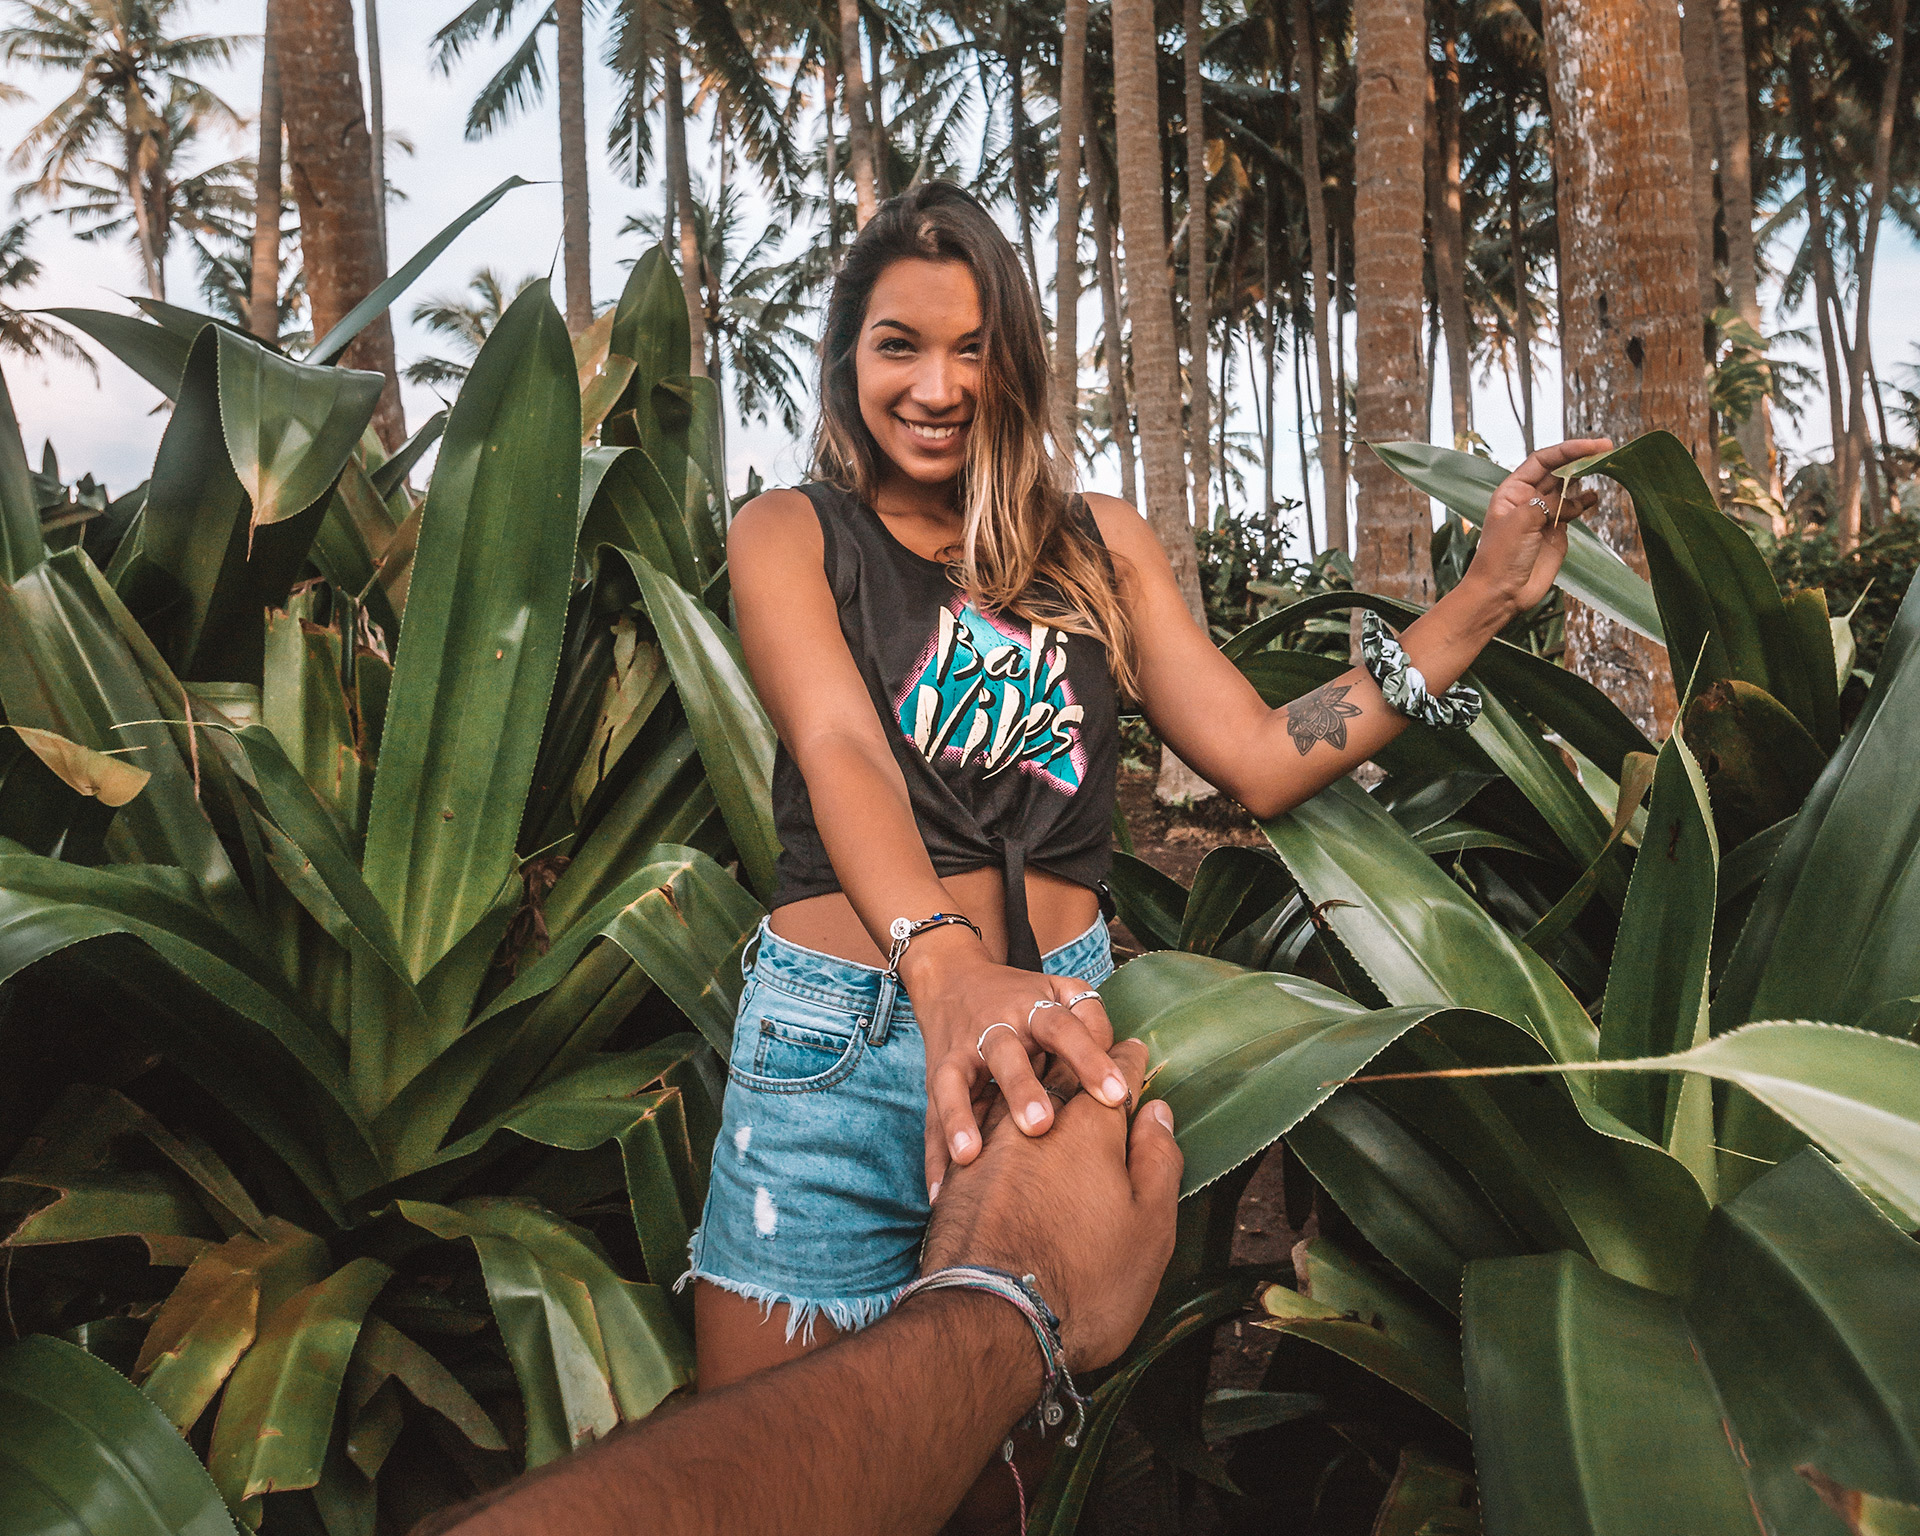 Love Bali tees freeoversea ethical clothing store Bali 1% for the planet palm tree vibes handmade in Bali Indonesia couple photography lush green palm trees pasut beach